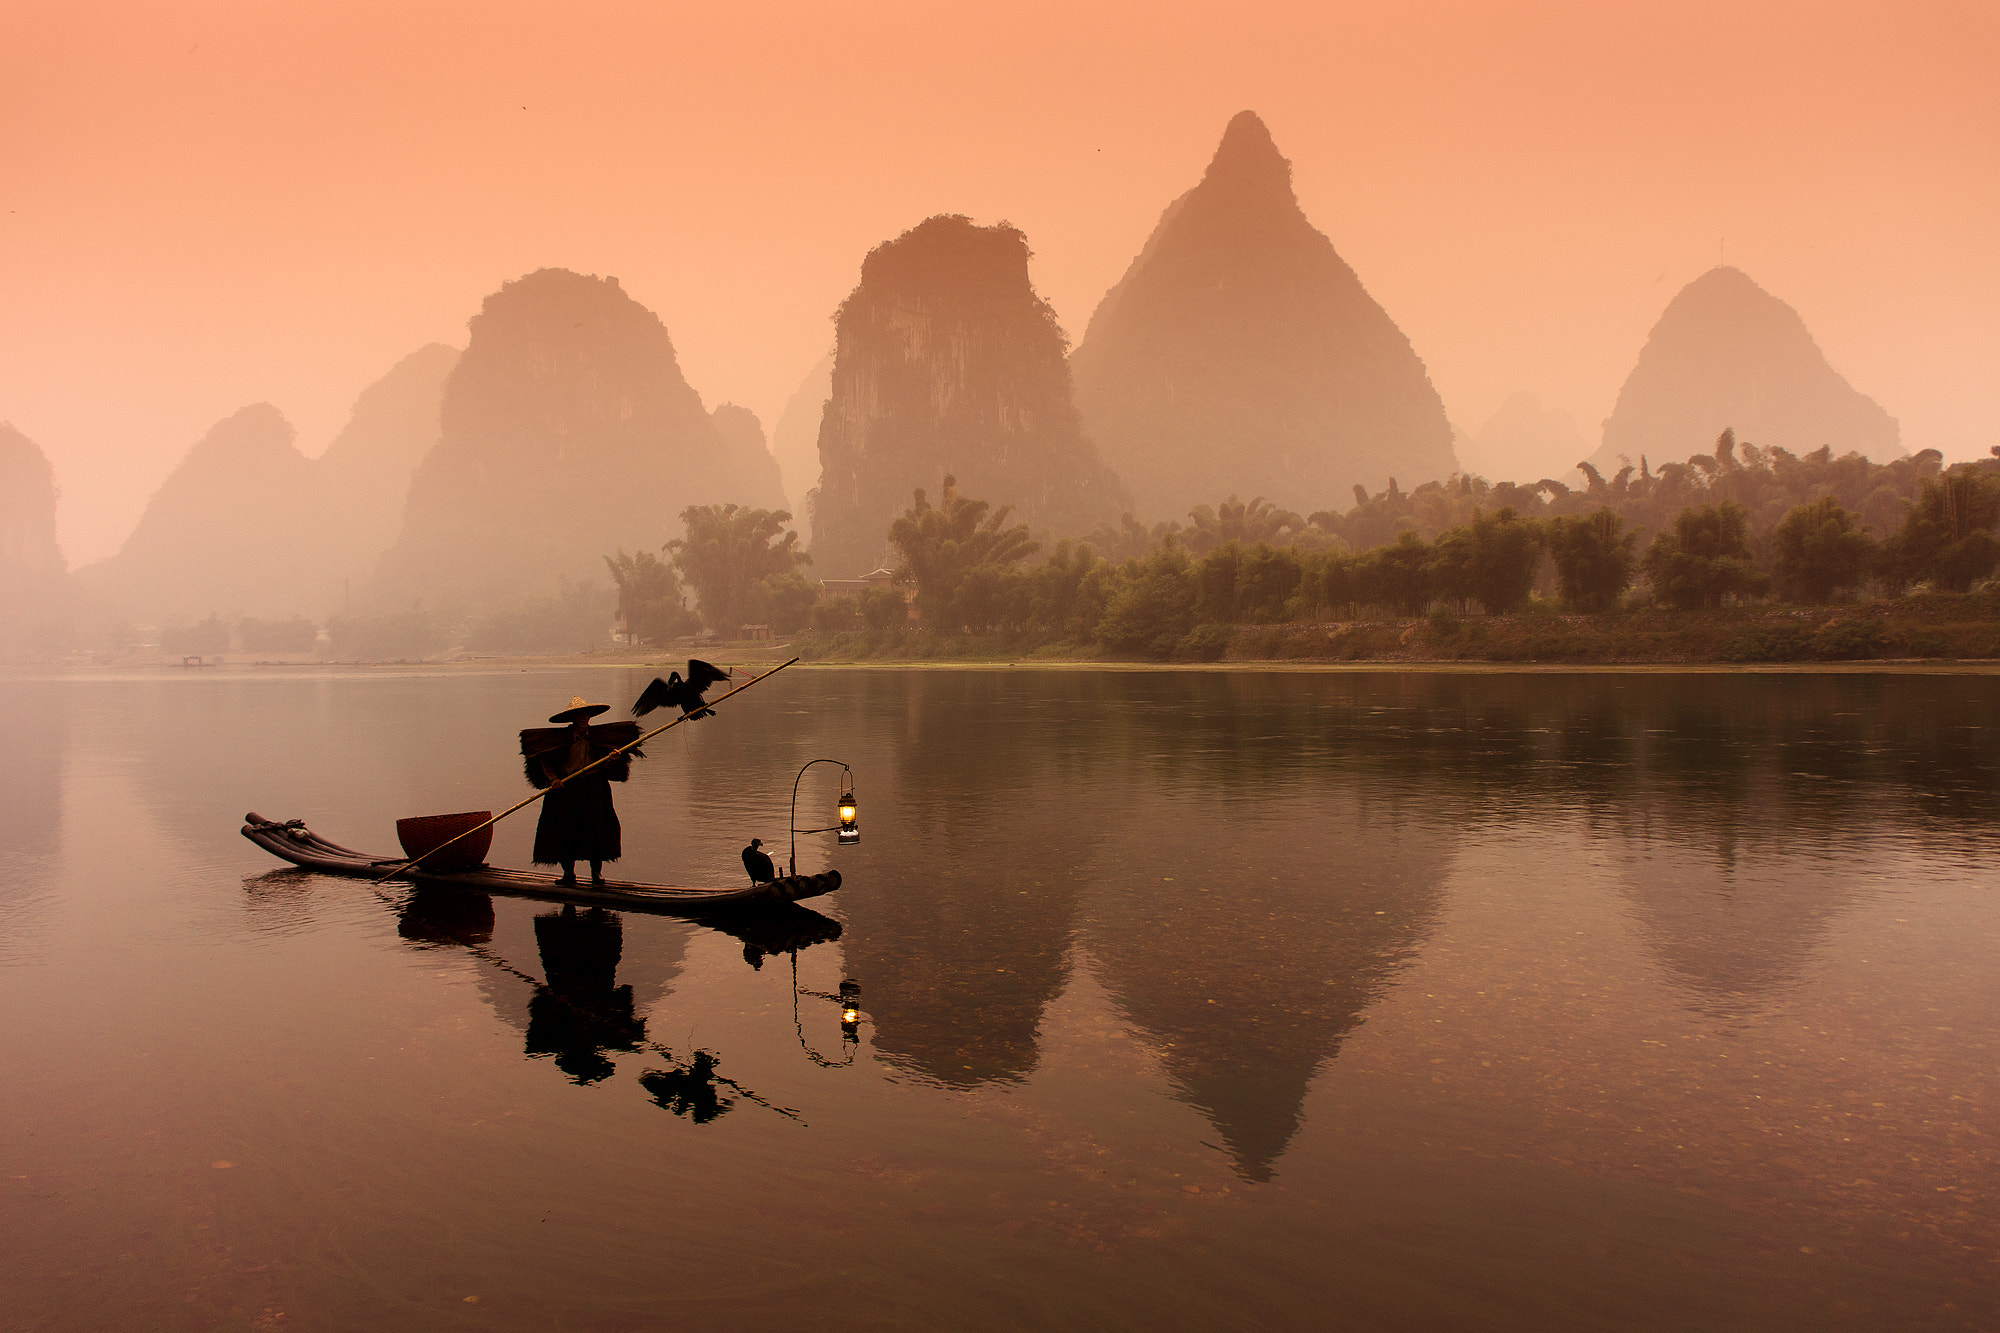 Photograph Cormorant fisherman on Li river #2 by Sergey Kuznetsov on 500px